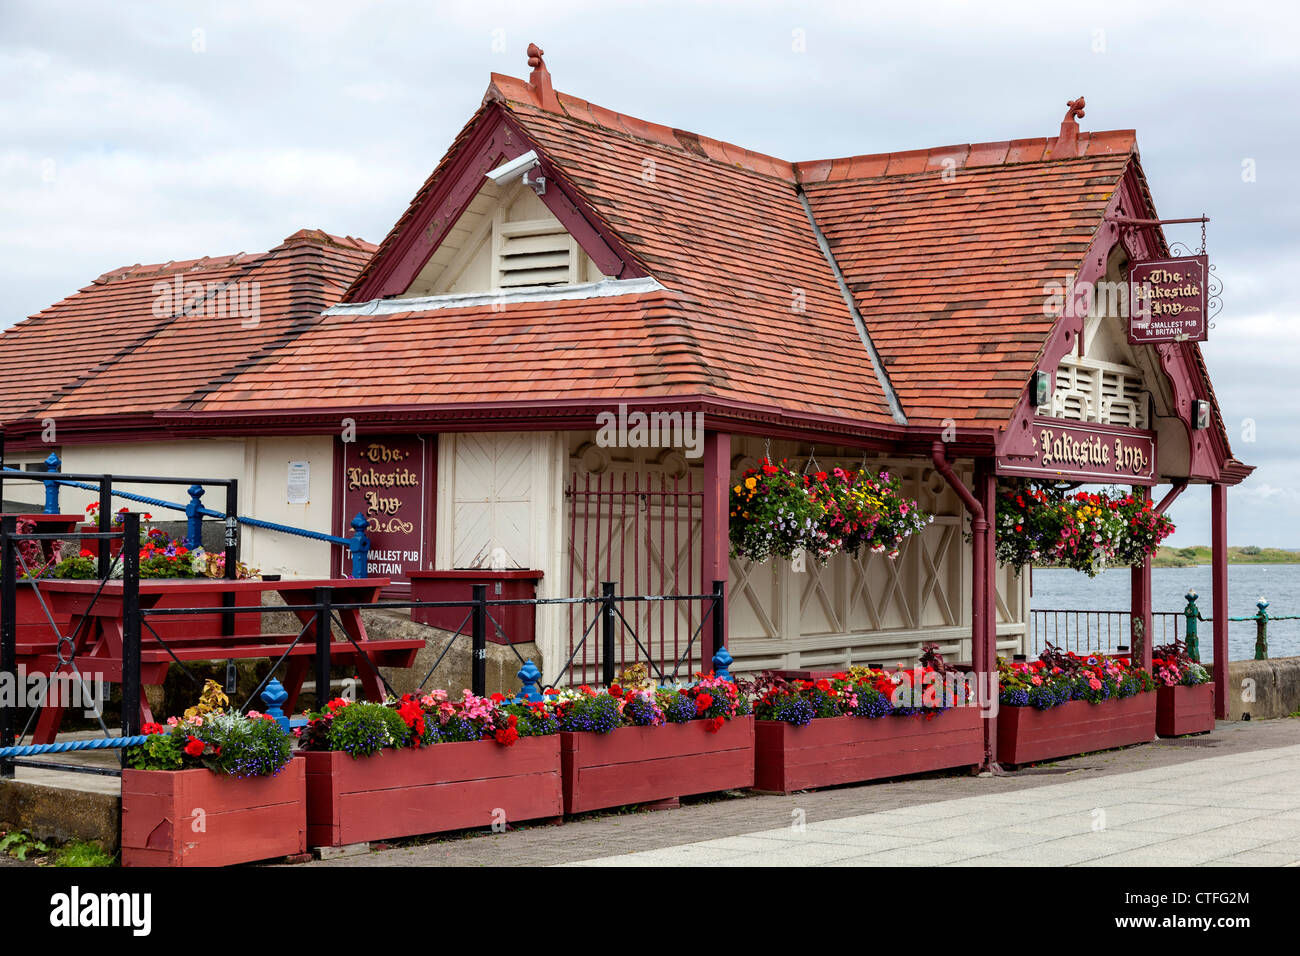 The Lakeside Inn on Southport promenade, the smallest pub in England. - Stock Image